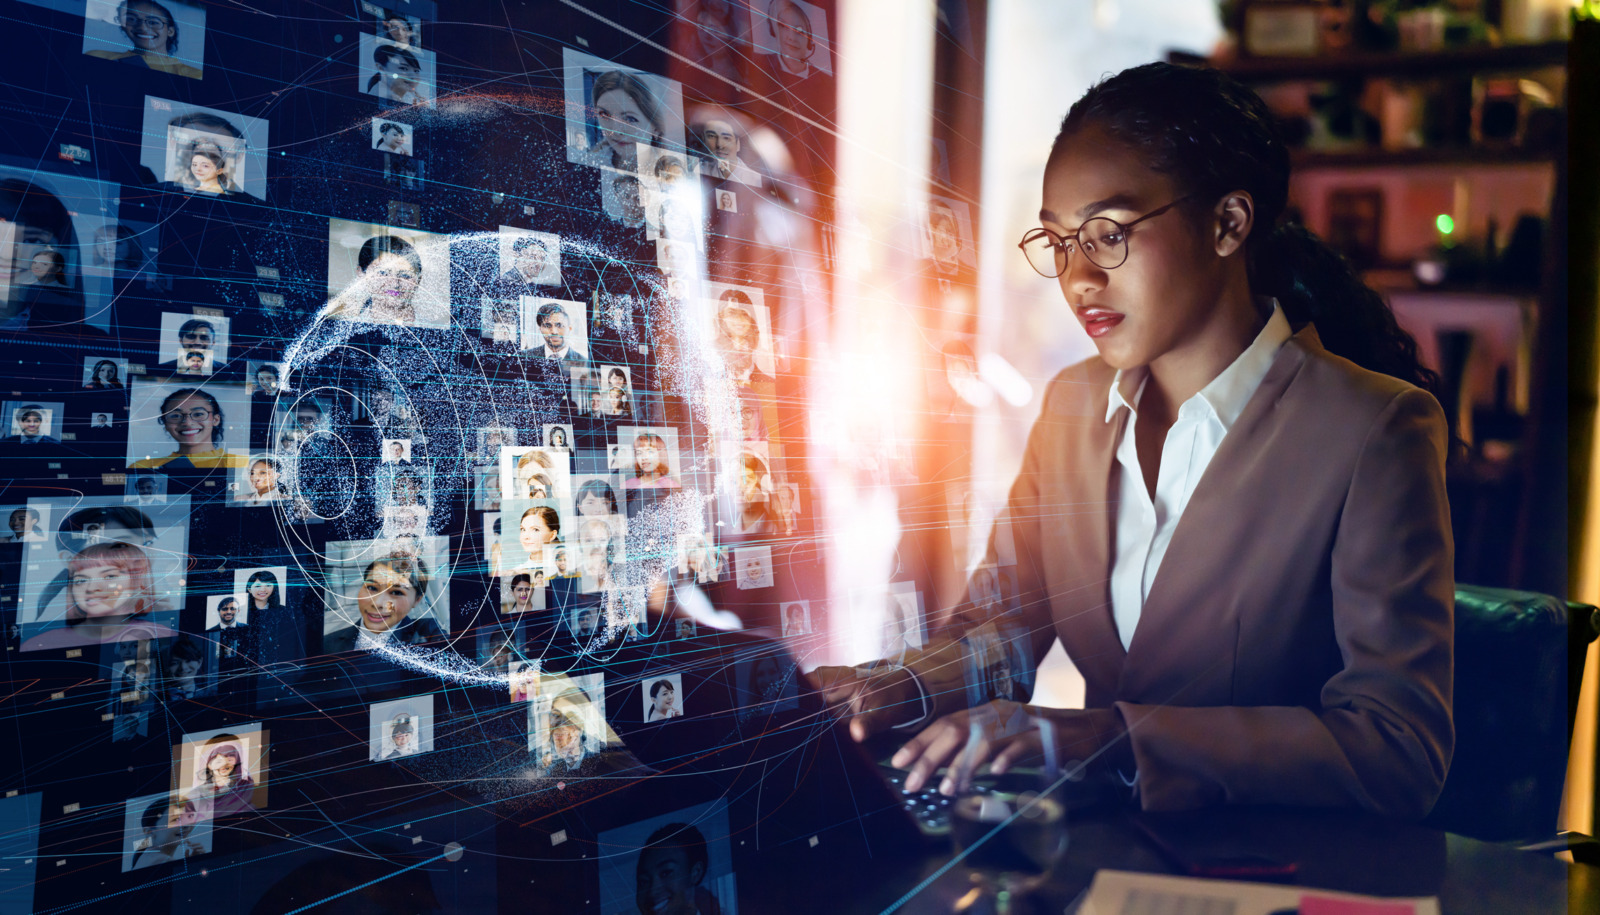 Tips for Keeping the Digitally Savvy Candidate Engaged